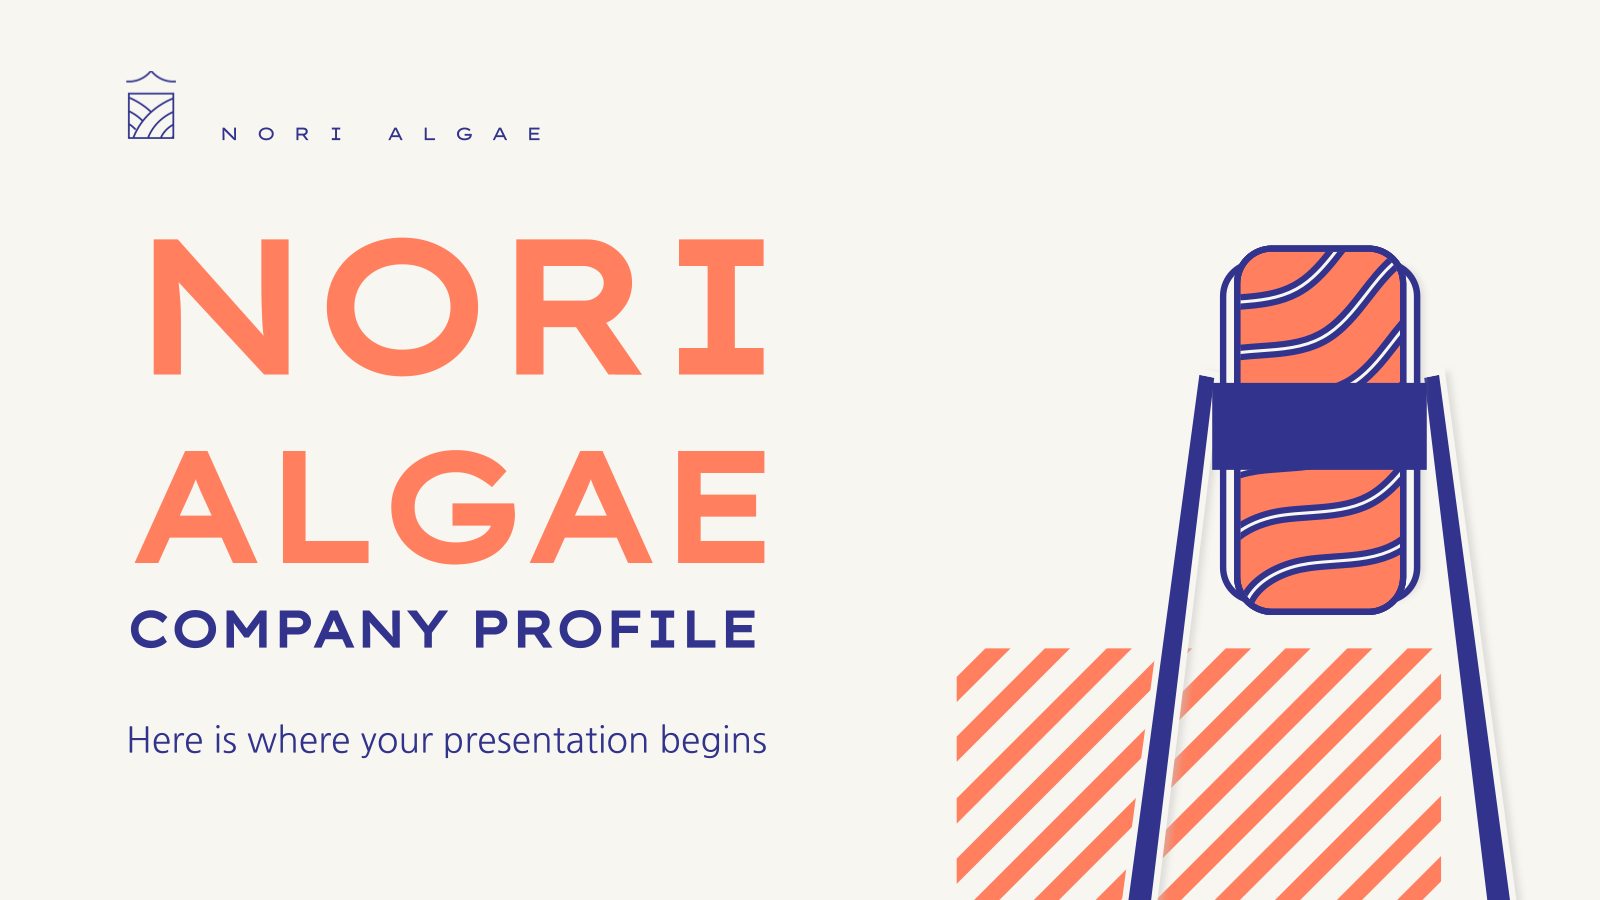 Nori Algae Company Profile presentation template